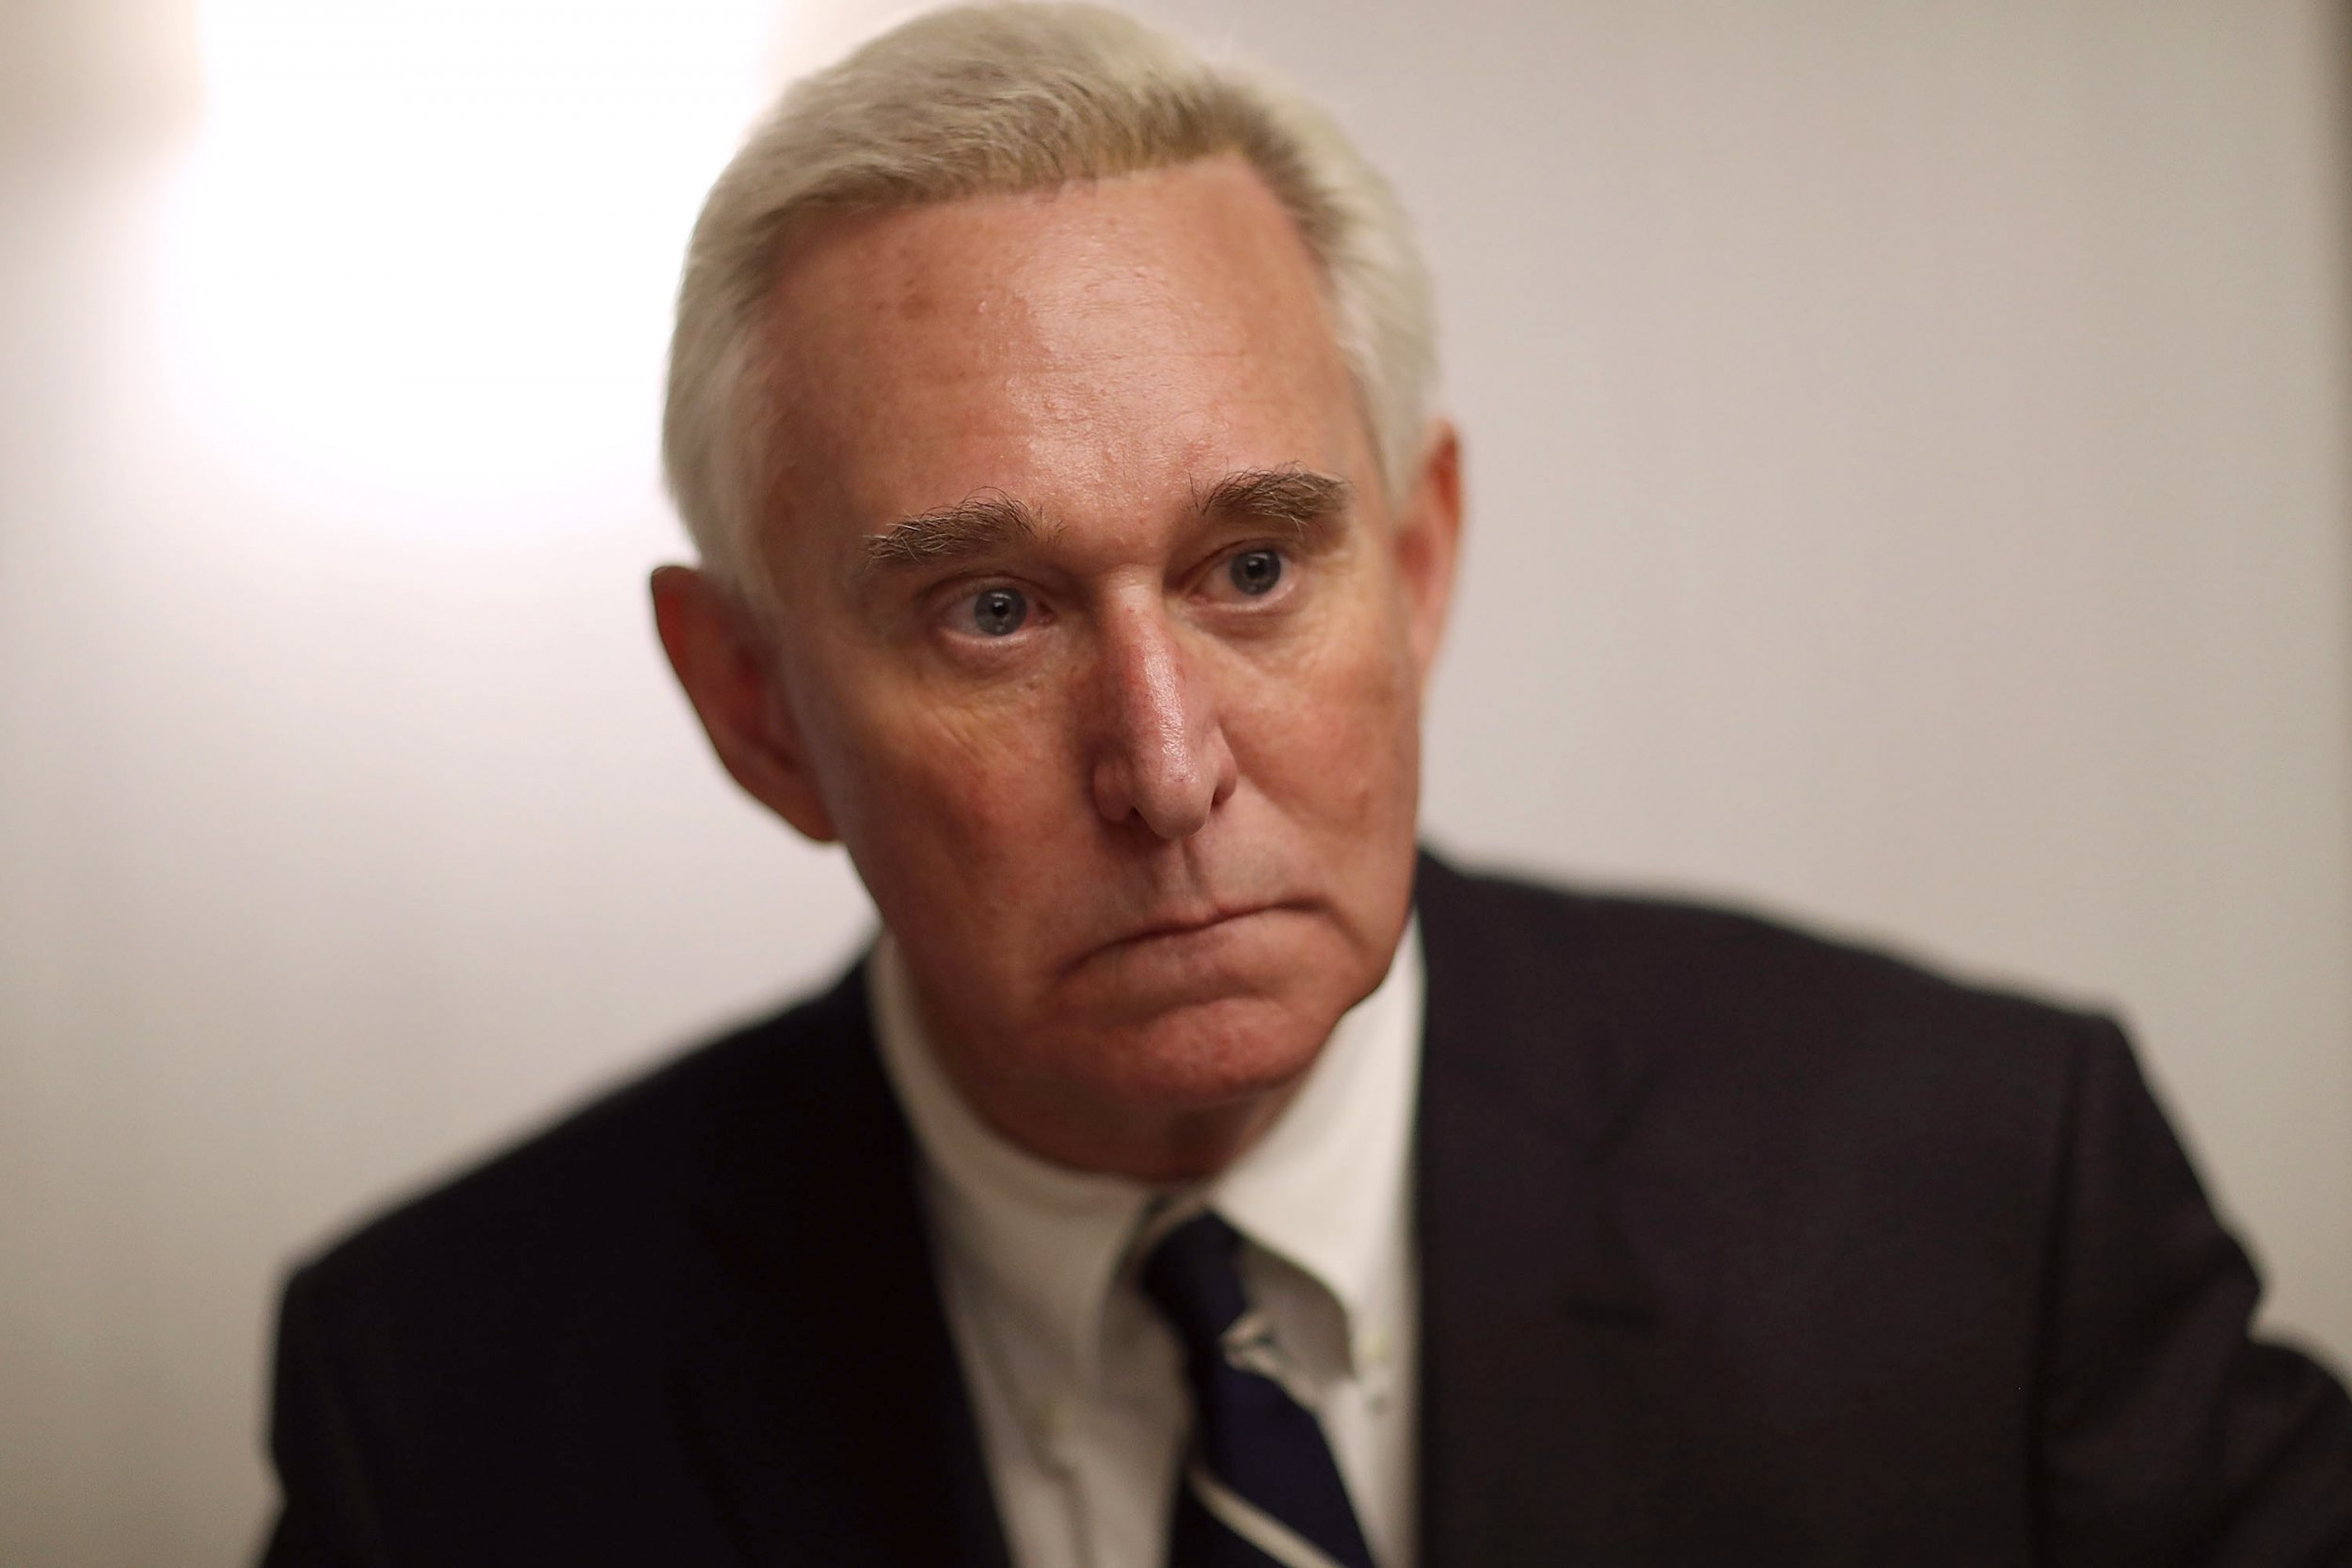 NXIVM: How Is Former Trump Adviser Roger Stone Connected to